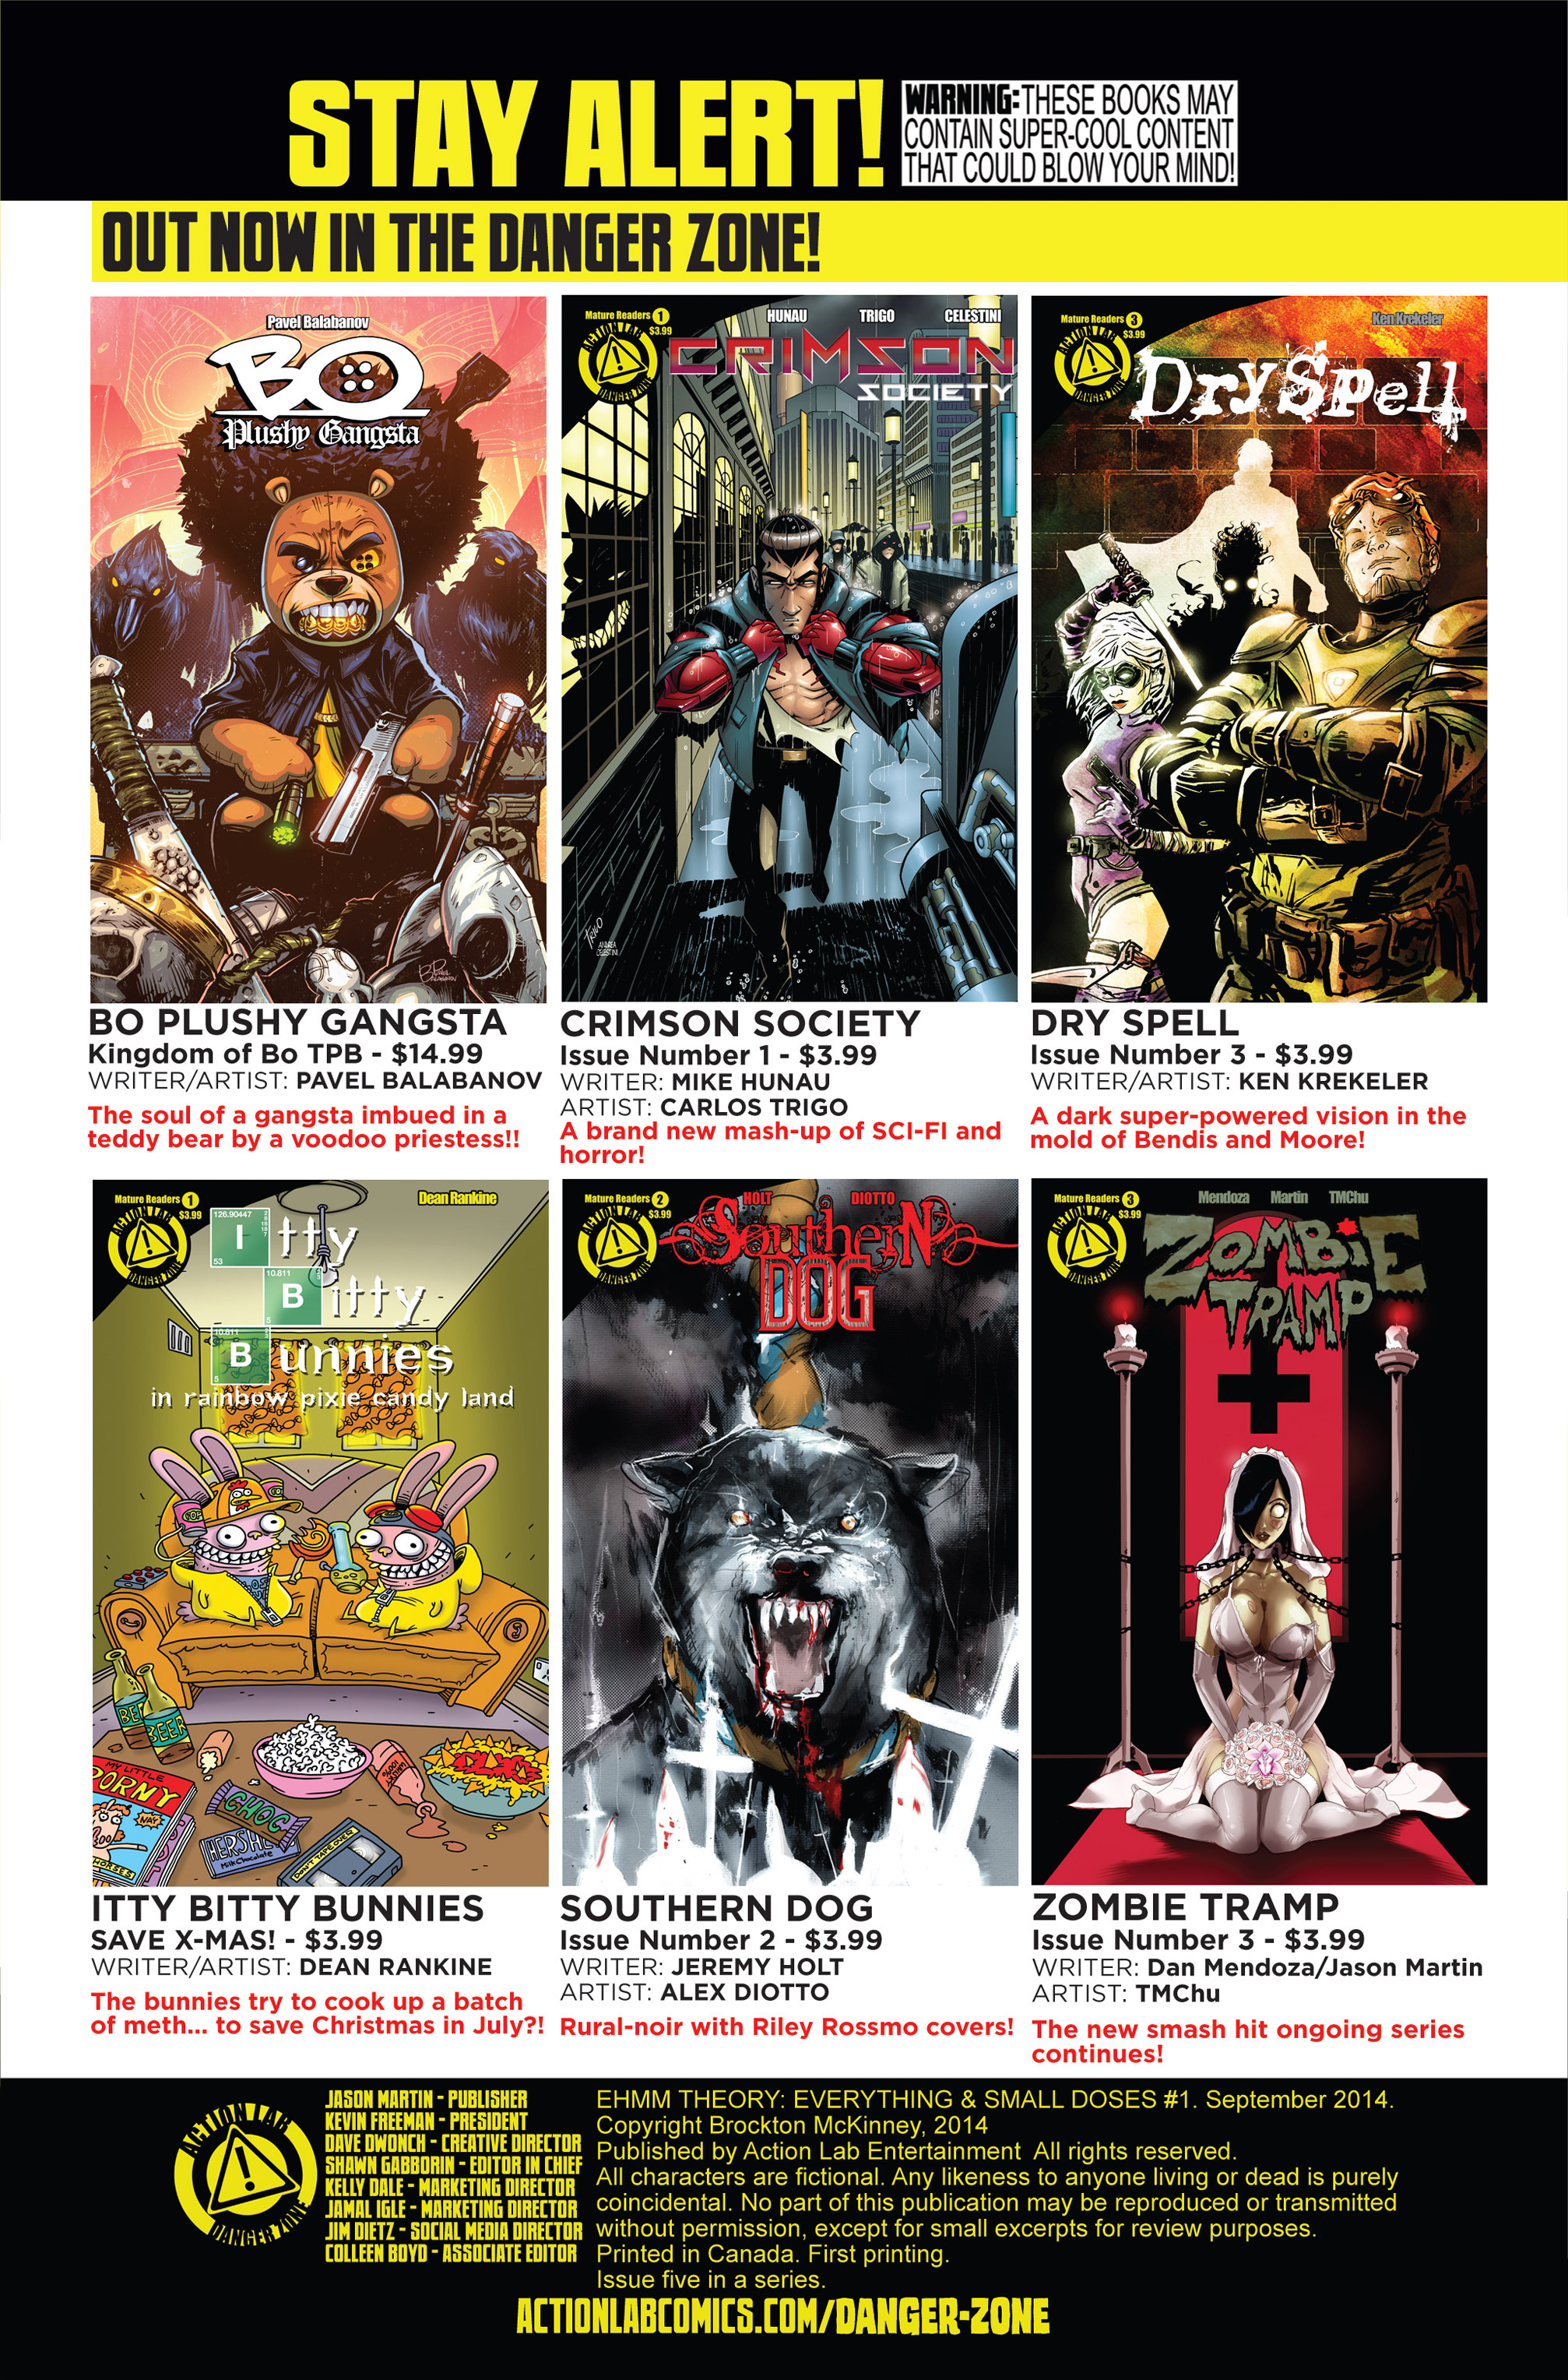 Read online Ehmm Theory: Everything & Small Doses comic -  Issue #1 - 31